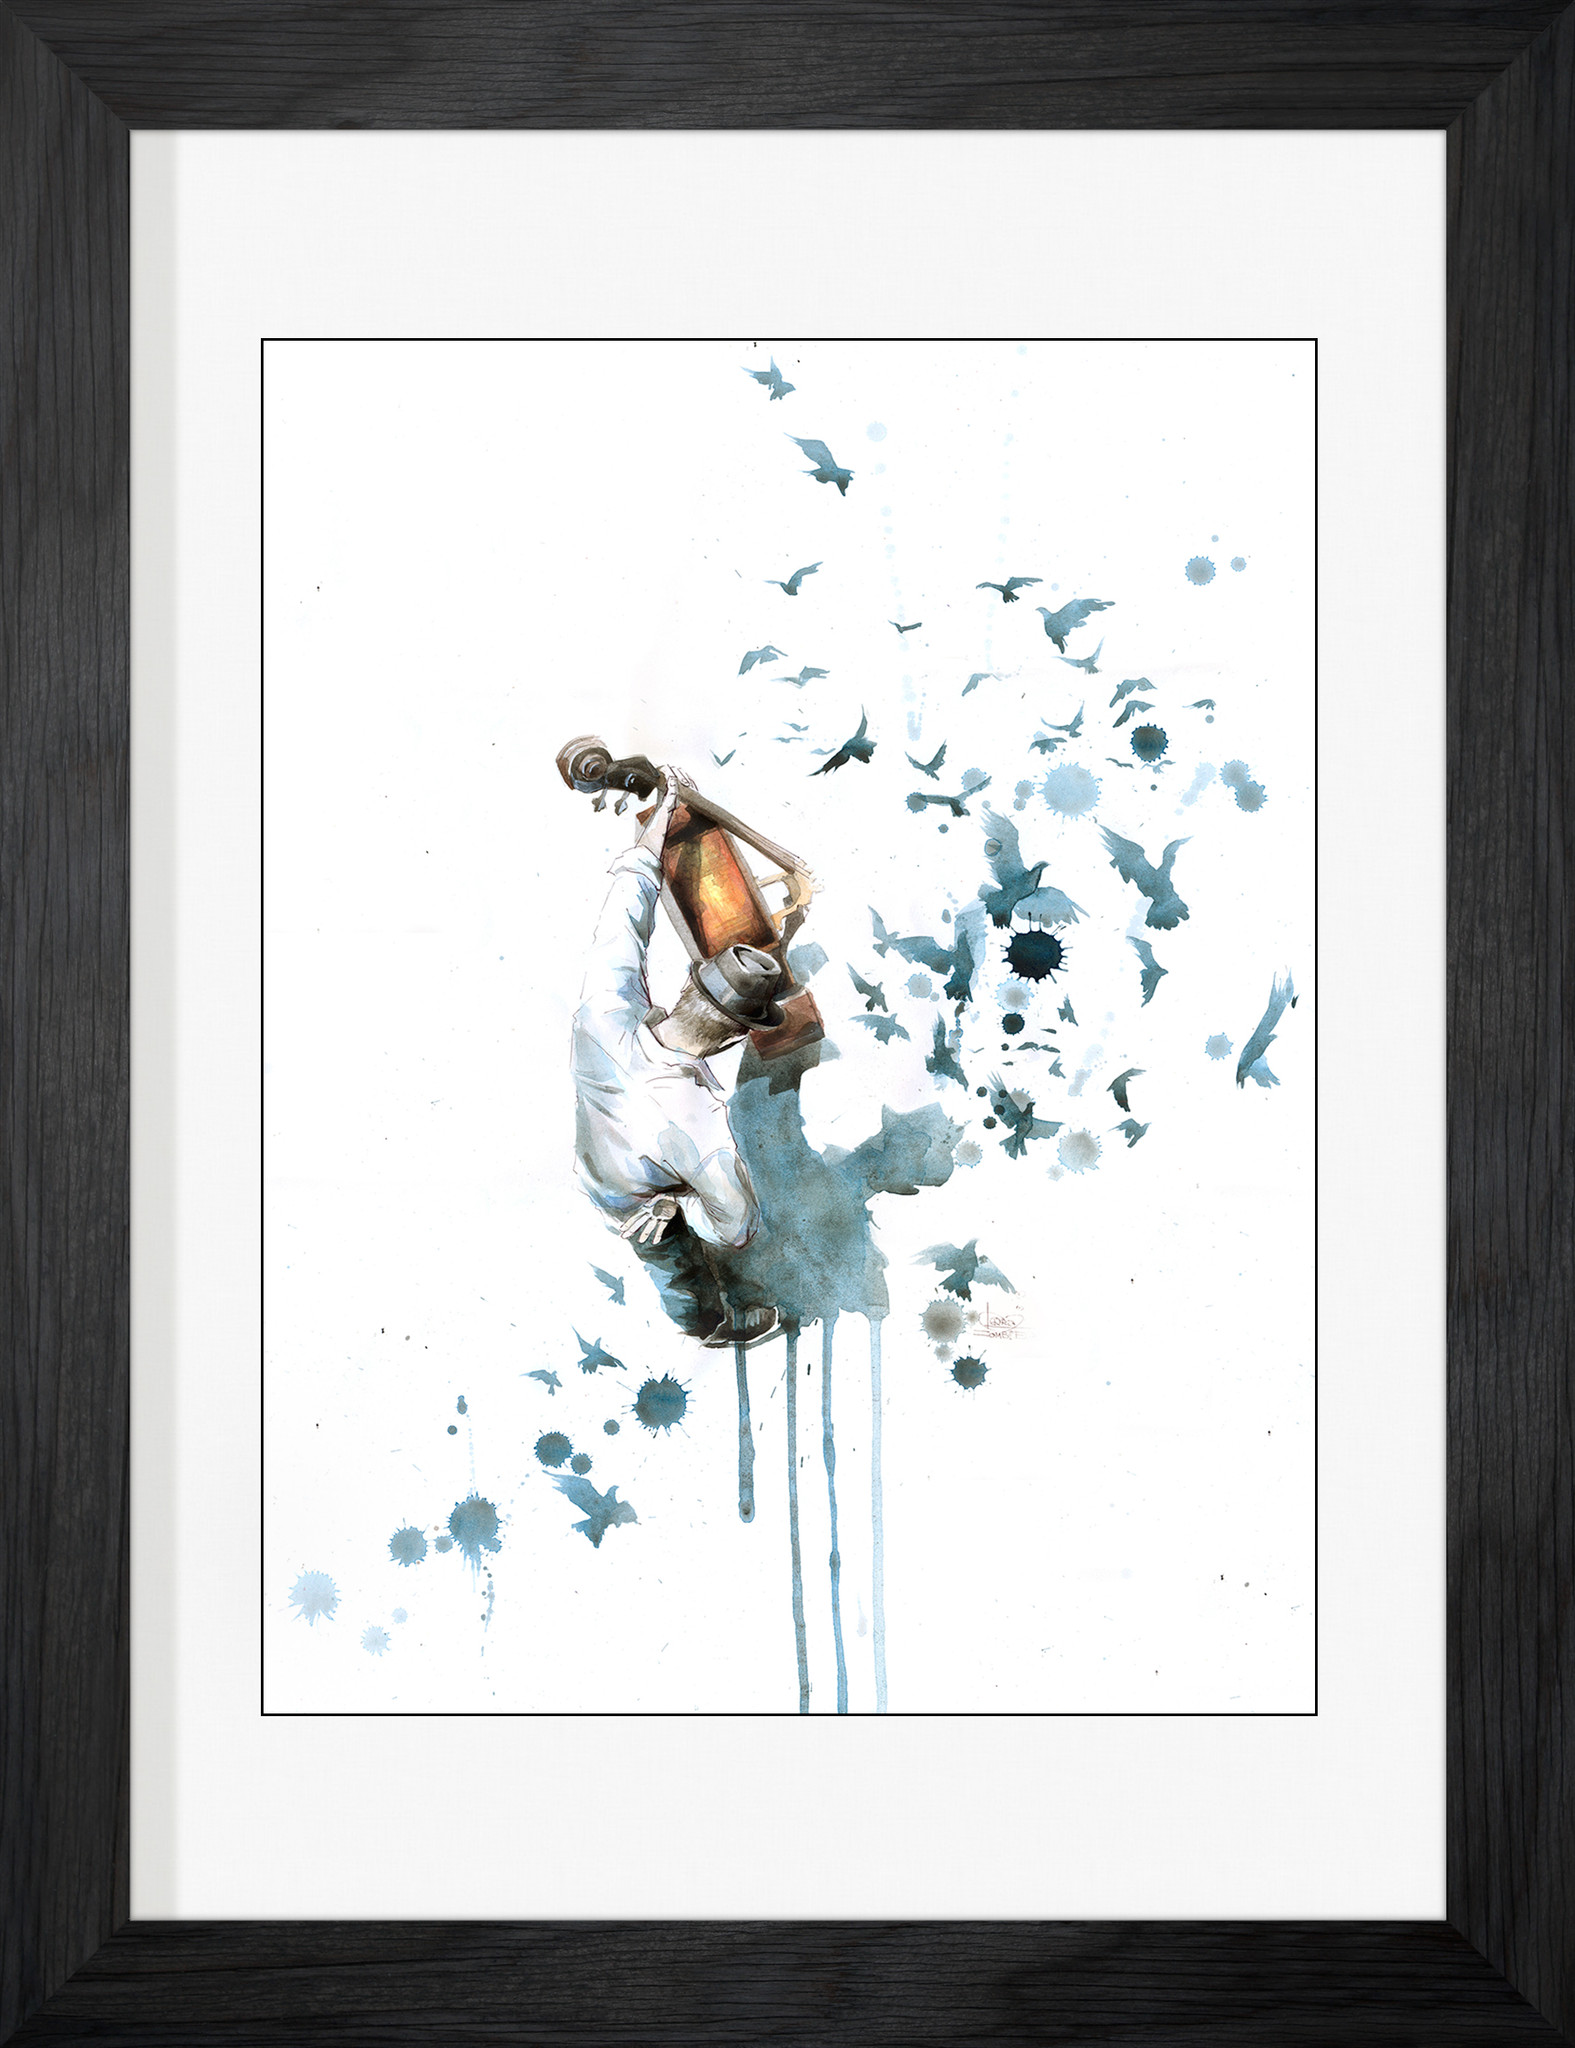 Billy-by-Lora-Zombie-Available-as-a-Framed-and-Matted-Print-http-www-eyesonwalls-com-collecti-wallpaper-wp5603400